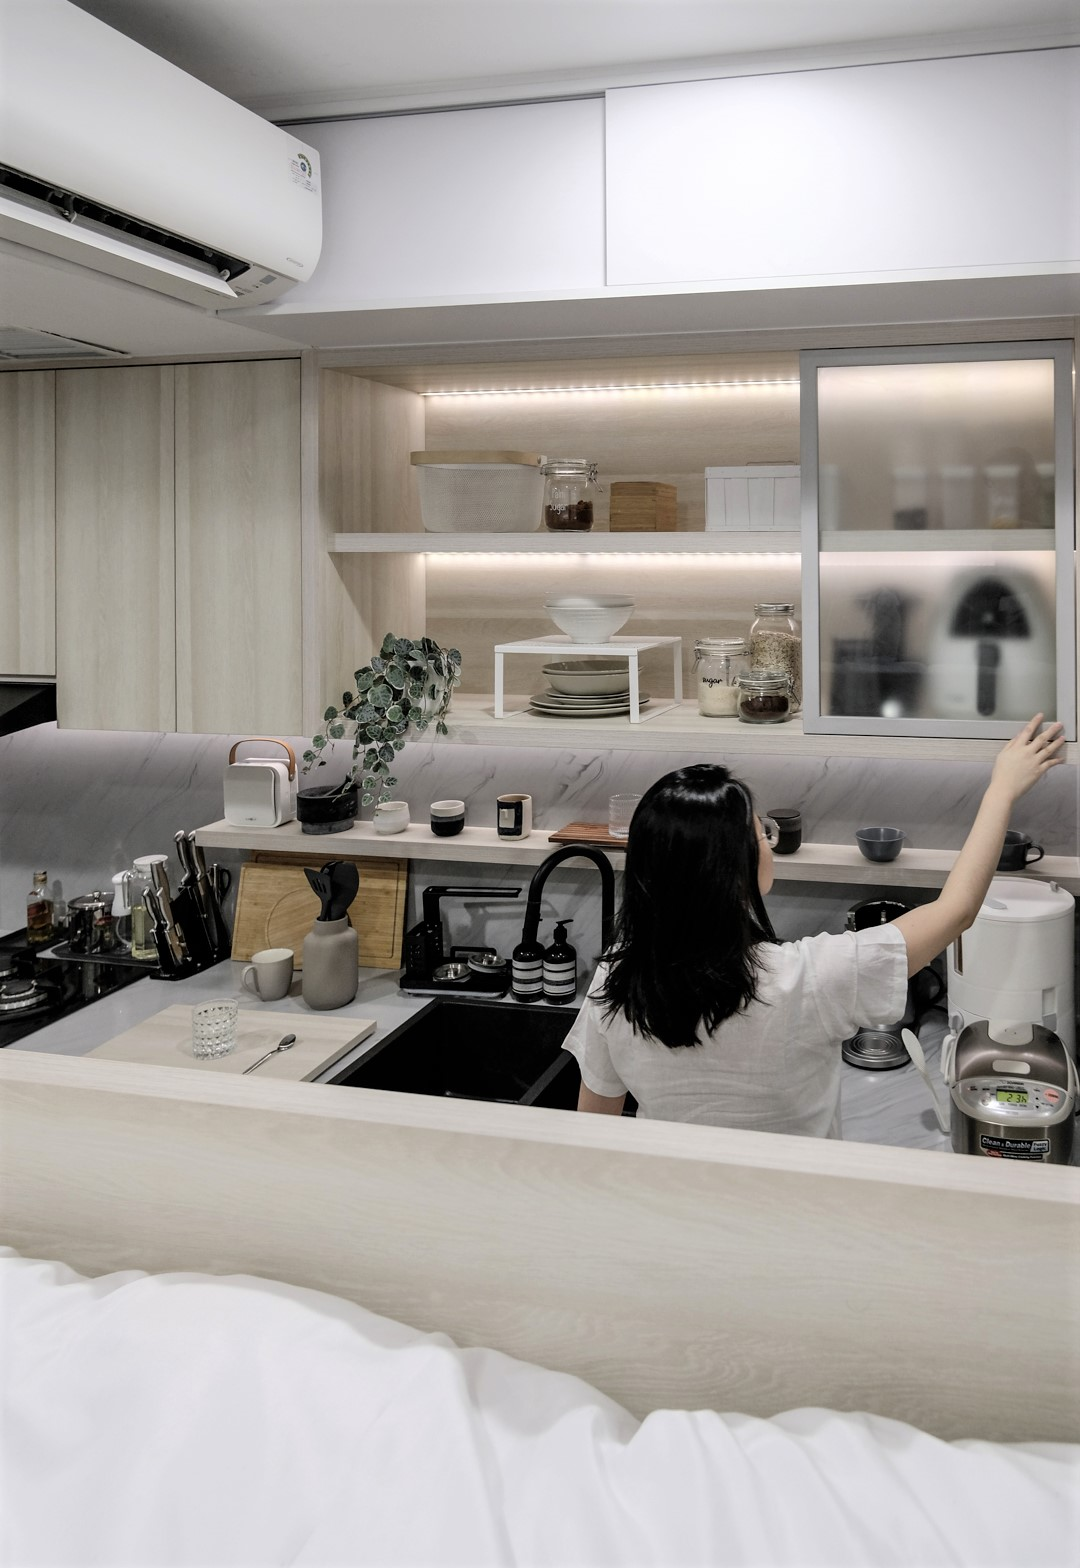 A Loft Bed With Storage Underneath Makes This Small Micro Apartment More Liveable 2